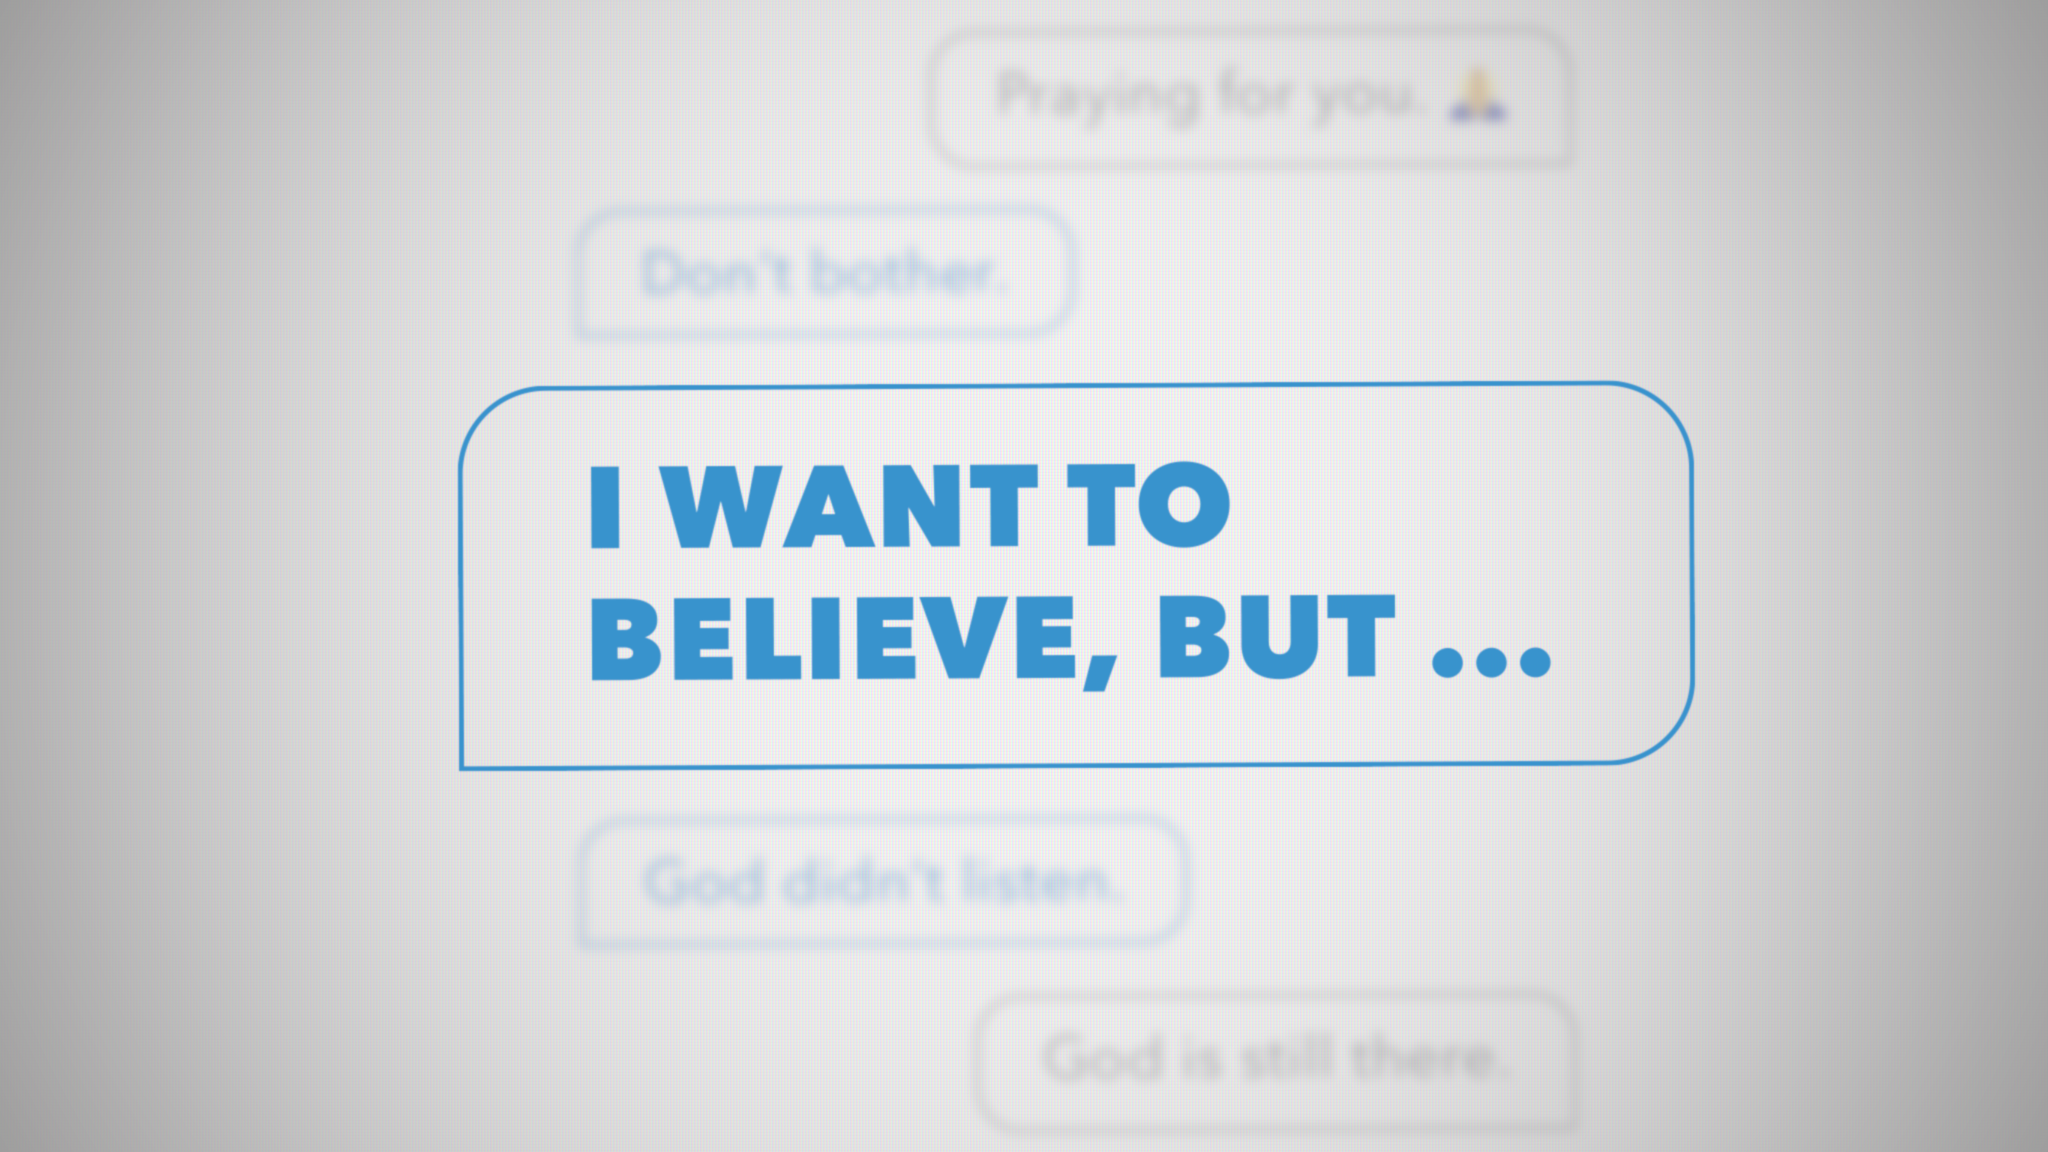 I want to believe...but